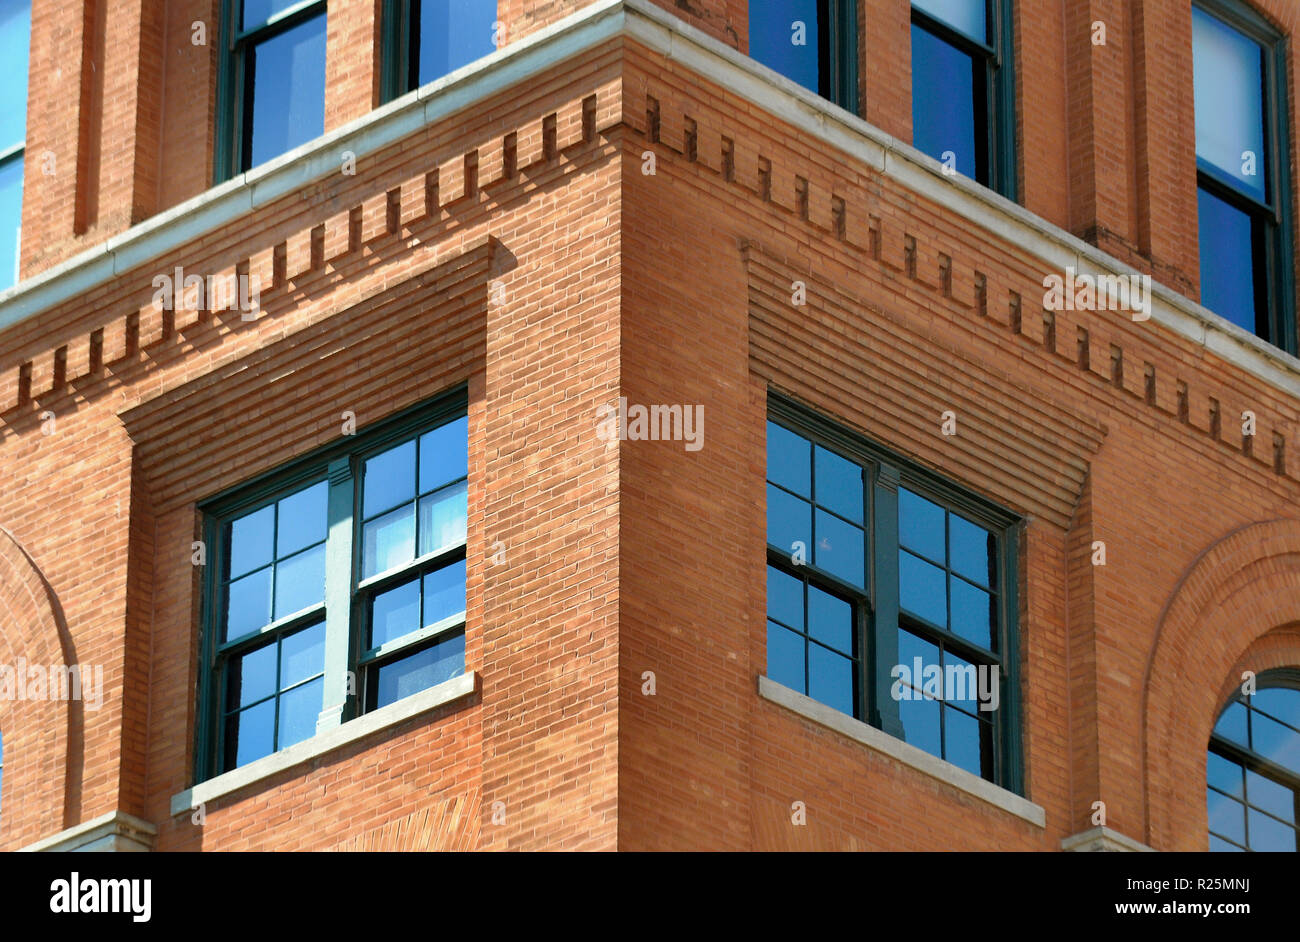 The exterior of the Texas Book Depository in Dealey Plaza in Dallas Texas where Lee Harvey Oswald assassinated John F. Kennedy on November 11,1963. - Stock Image